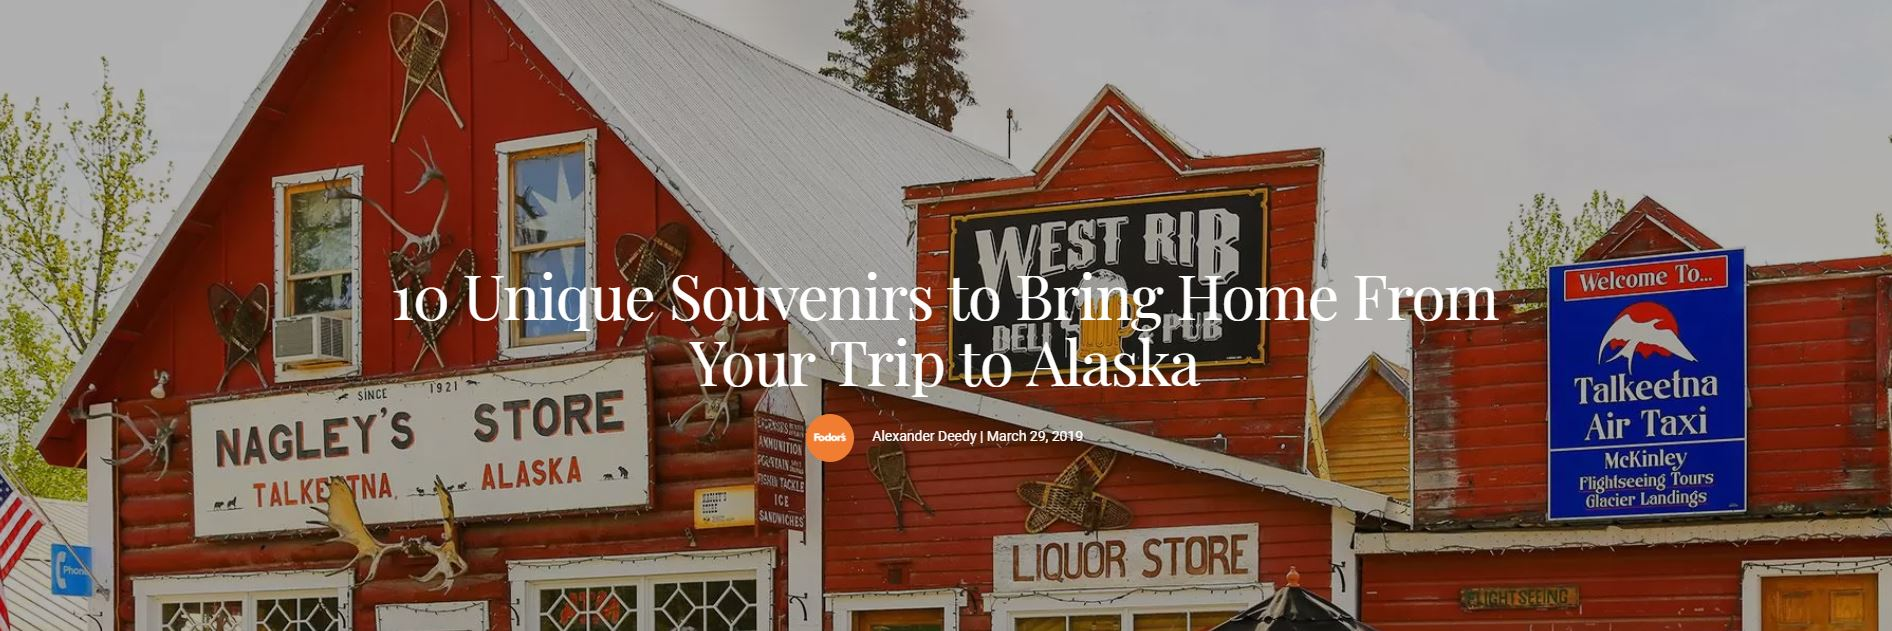 Fodor's Alaska Experience Article Your Trip to Alaska Nagley's Store in Talkeetna